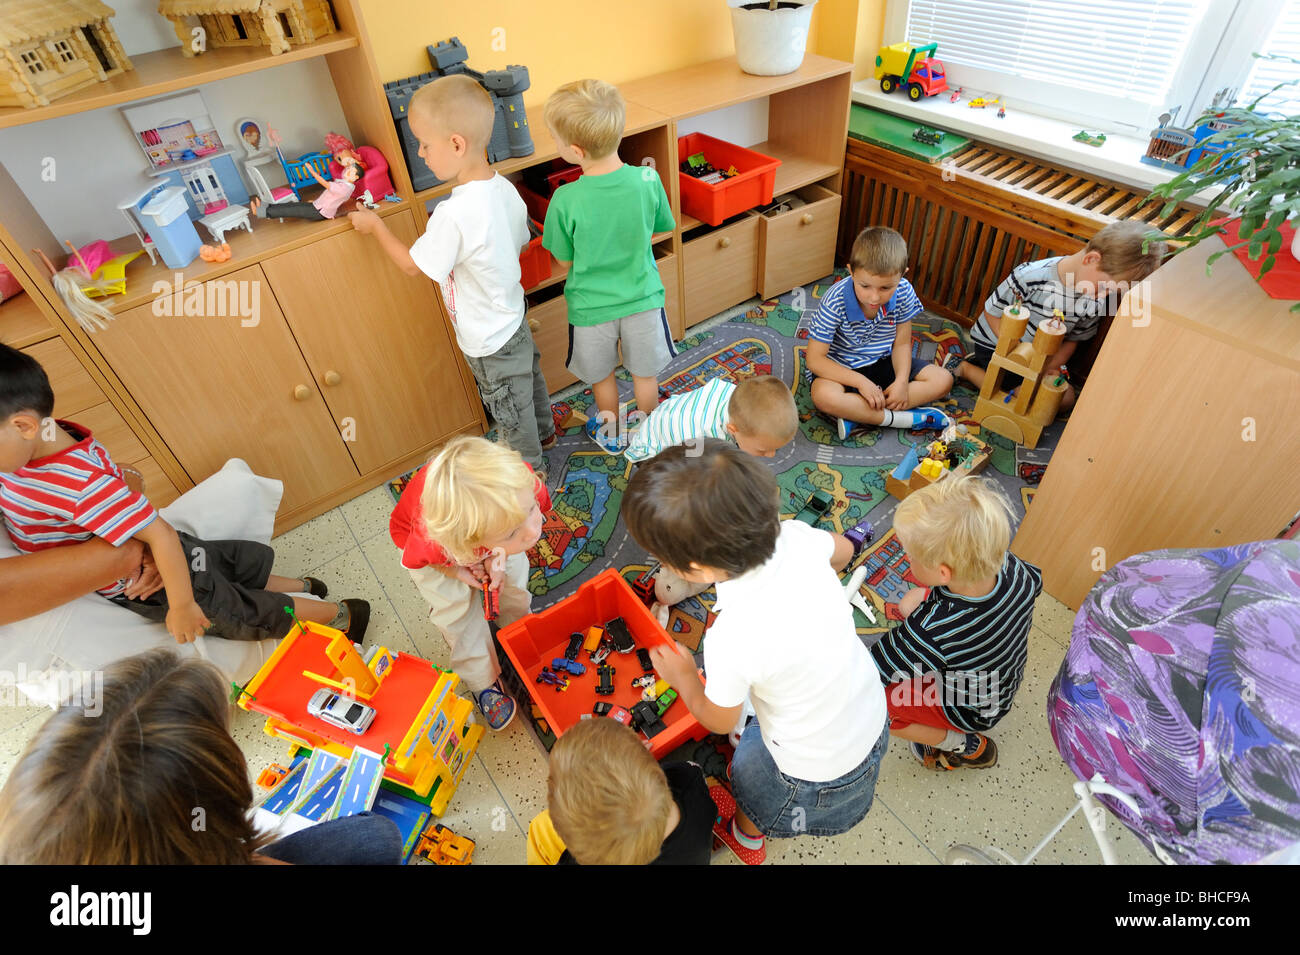 Preschool Children Playing In Class With Toys Stock Photo